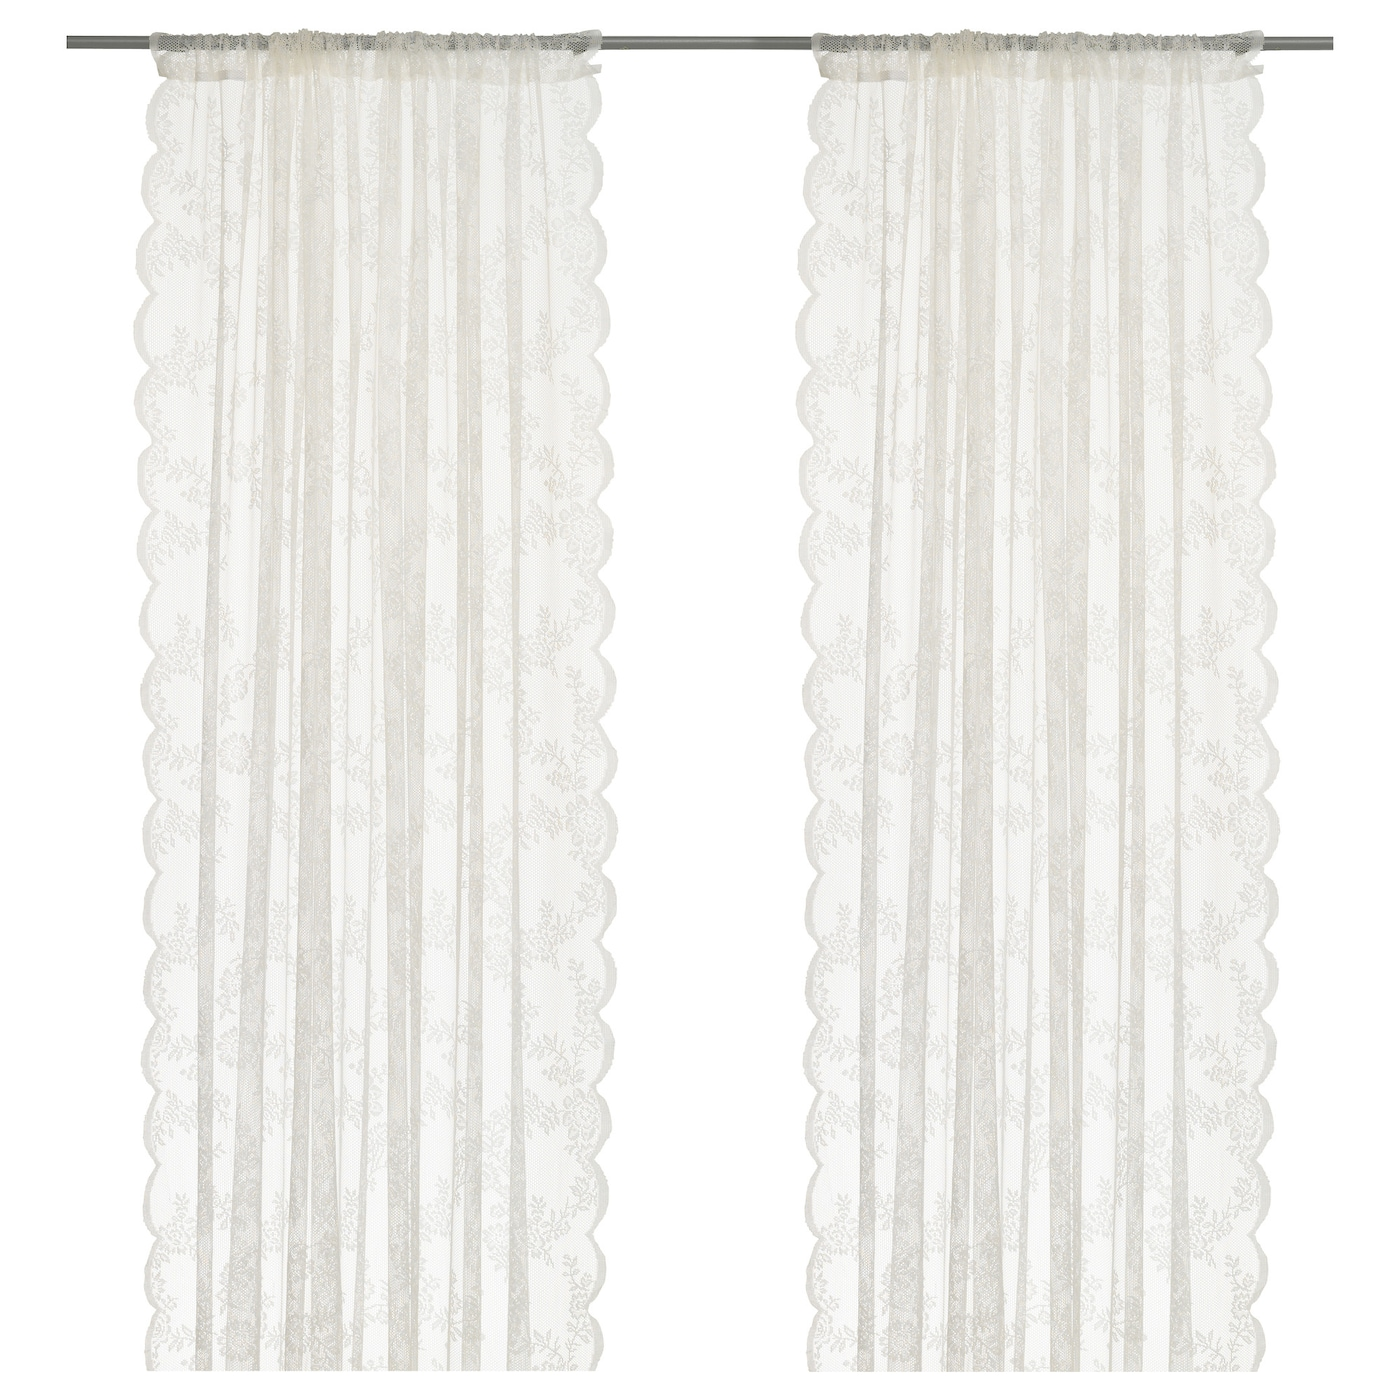 ALVINE SPETS Lace curtains, 1 pair - off-white - IKEA